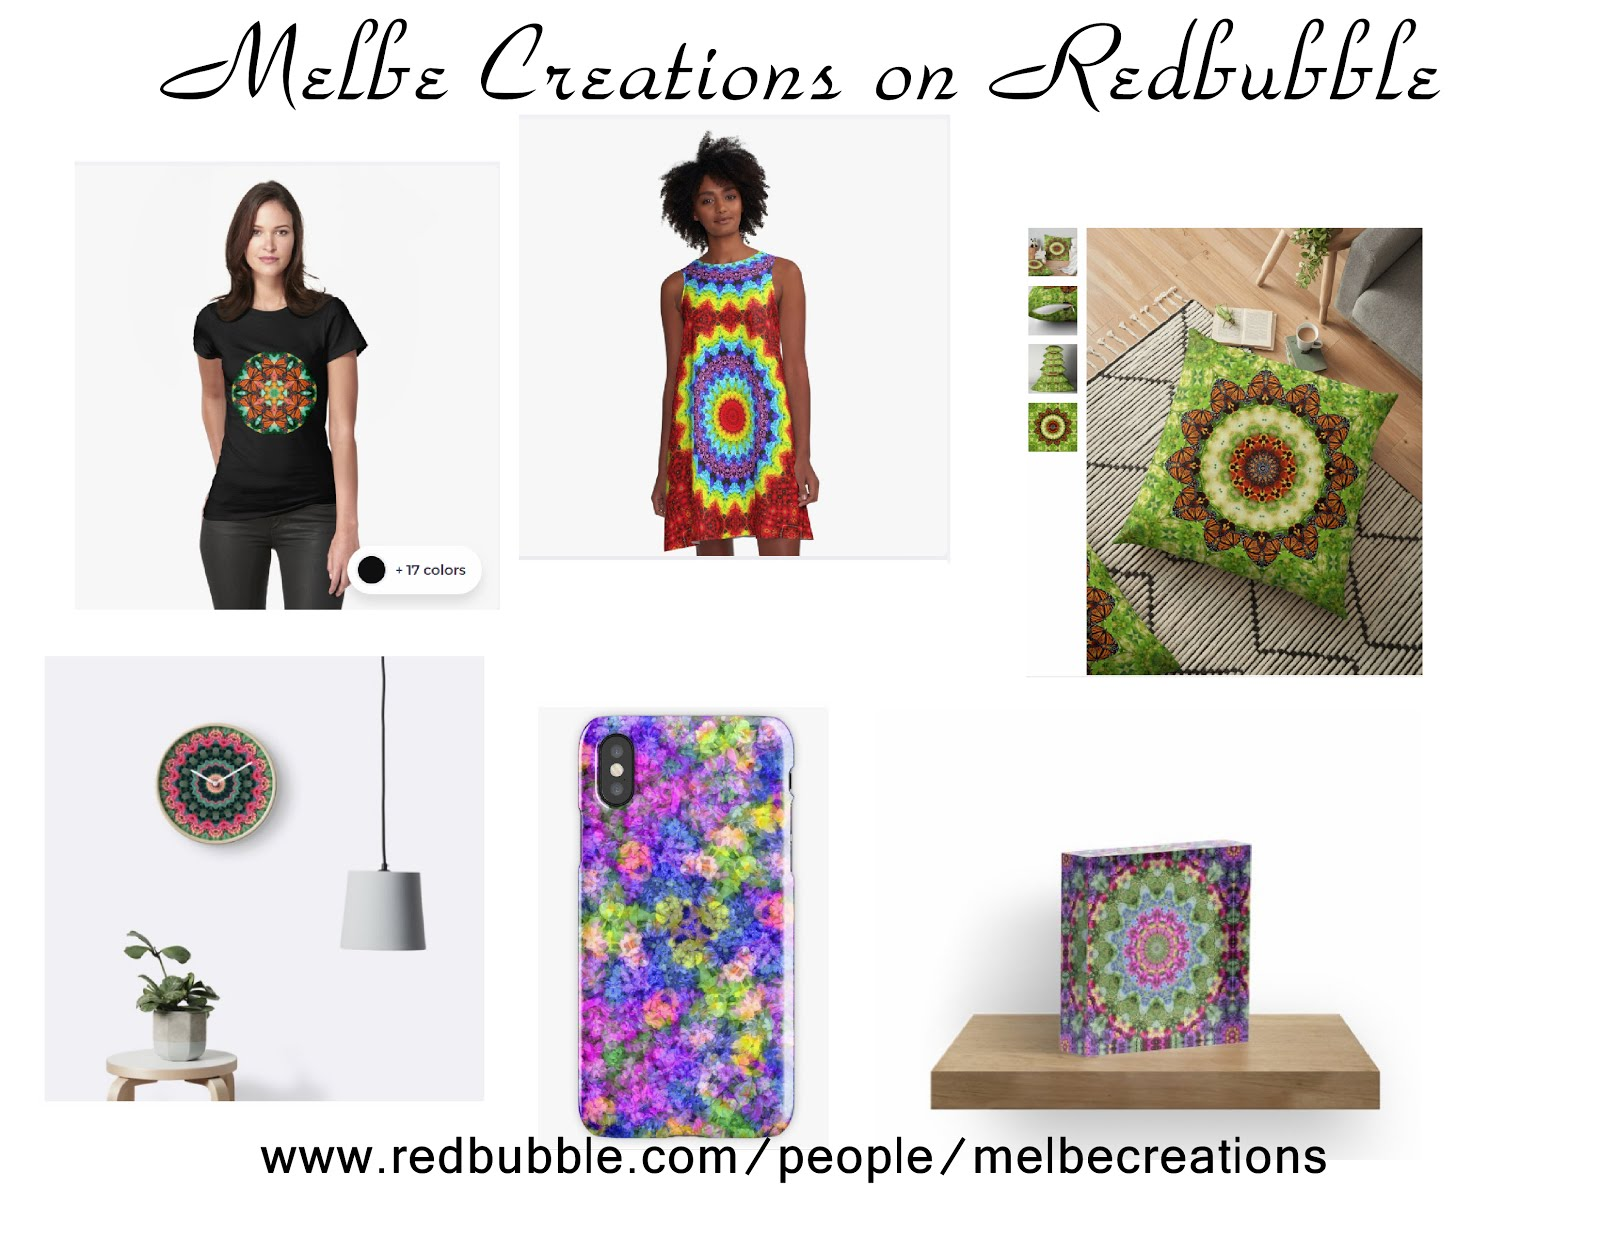 My Redbubble Store